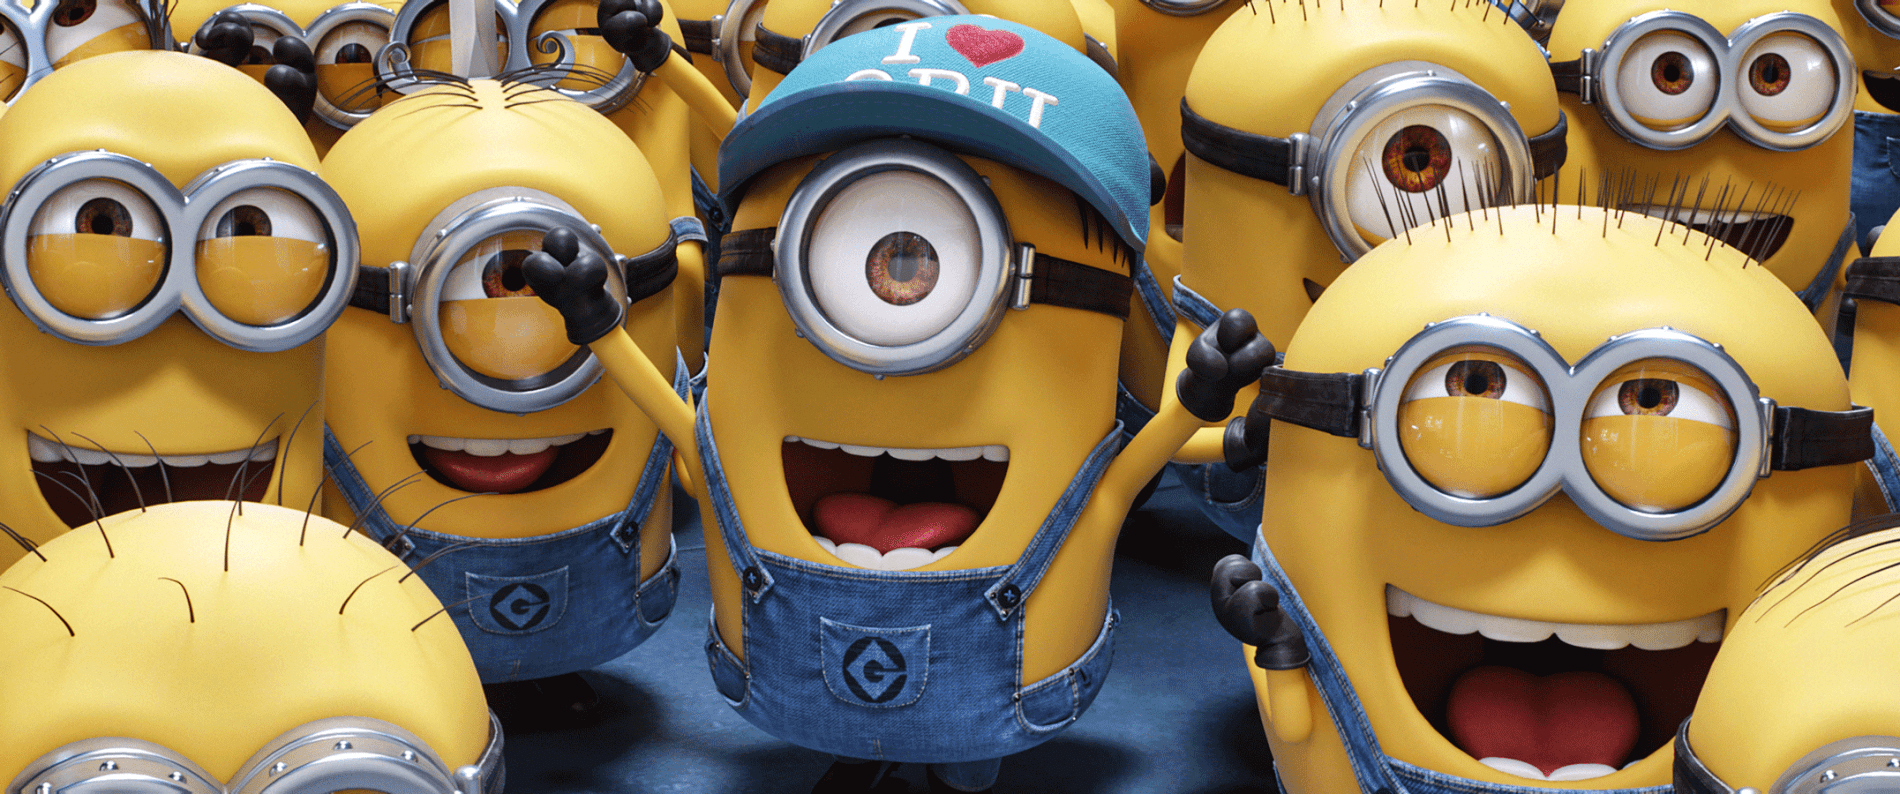 Minion Camera App : Take on the challenge and sing karaoke with the minions in